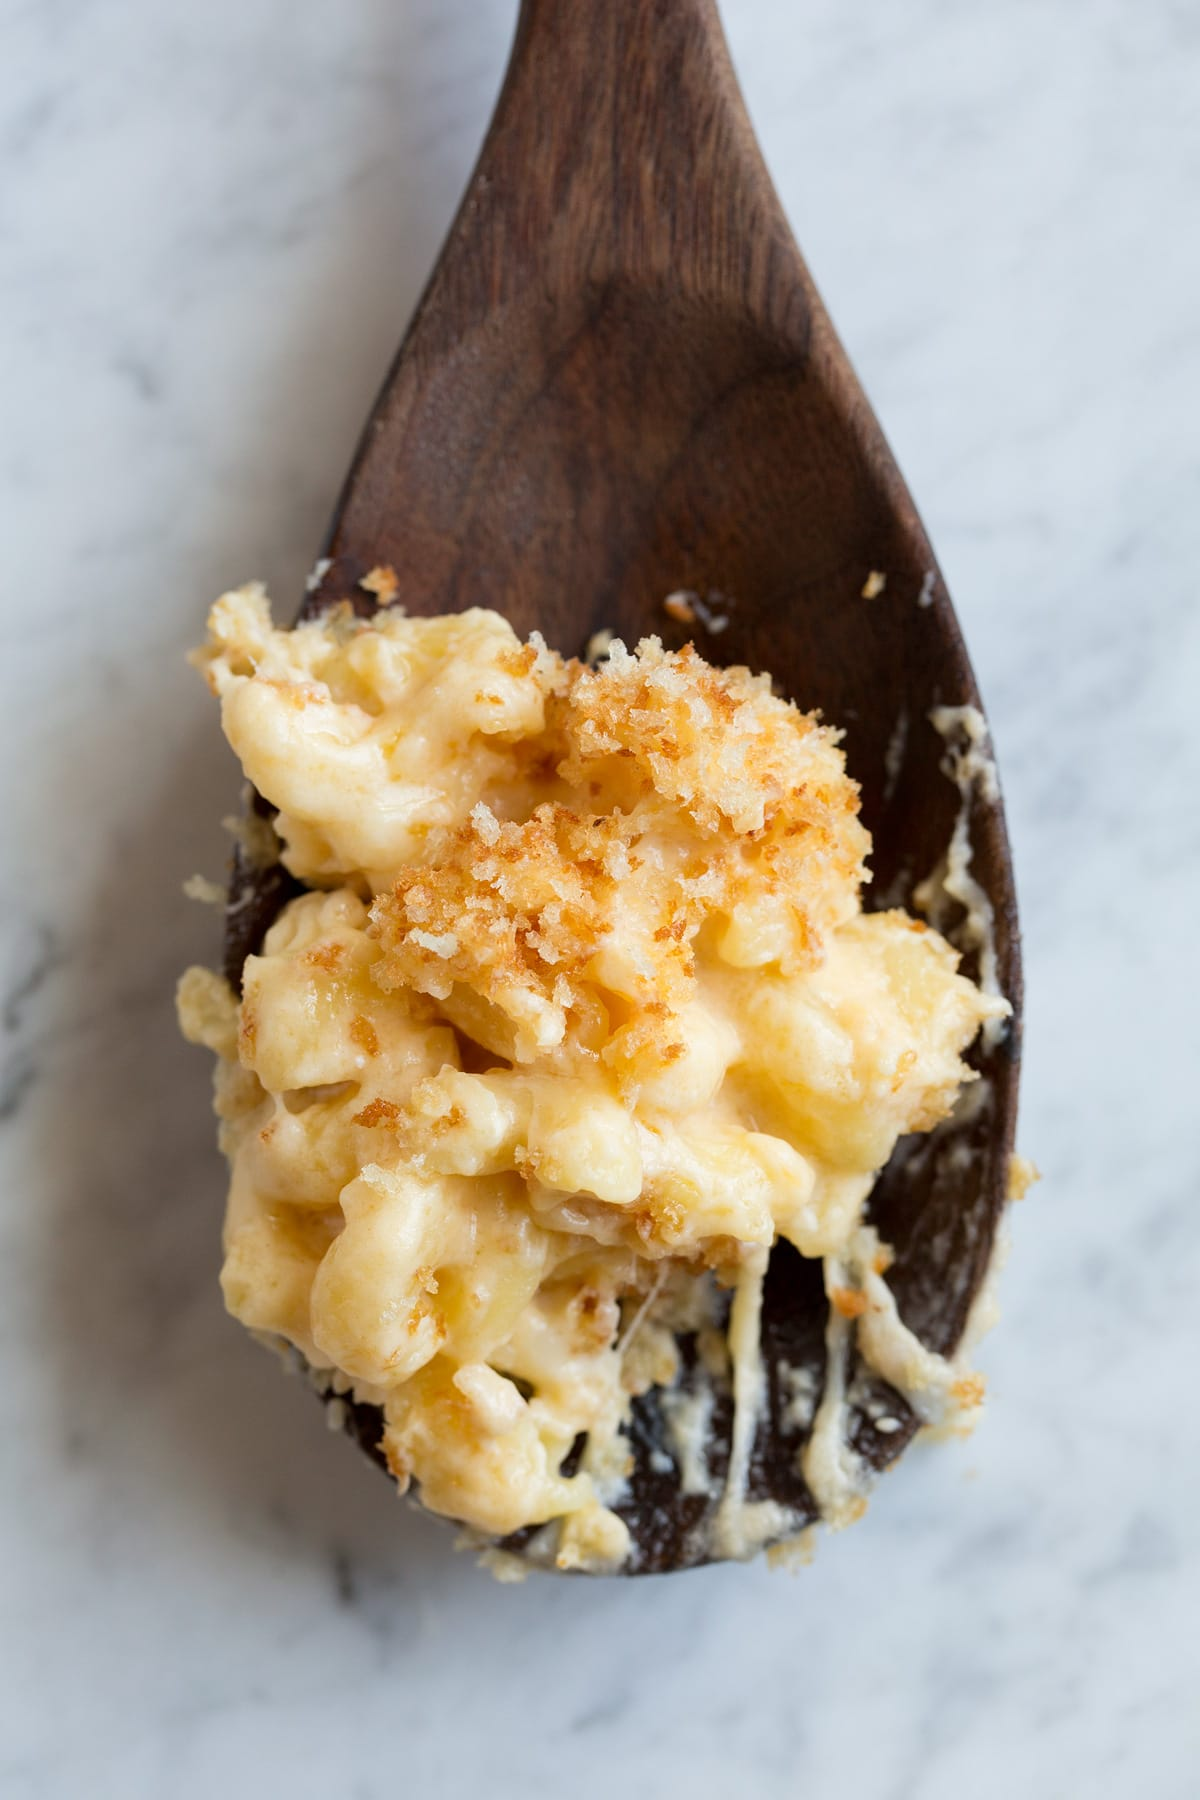 Close up image of scoop of macaroni and cheese topped with toasted panko bread crumbs.